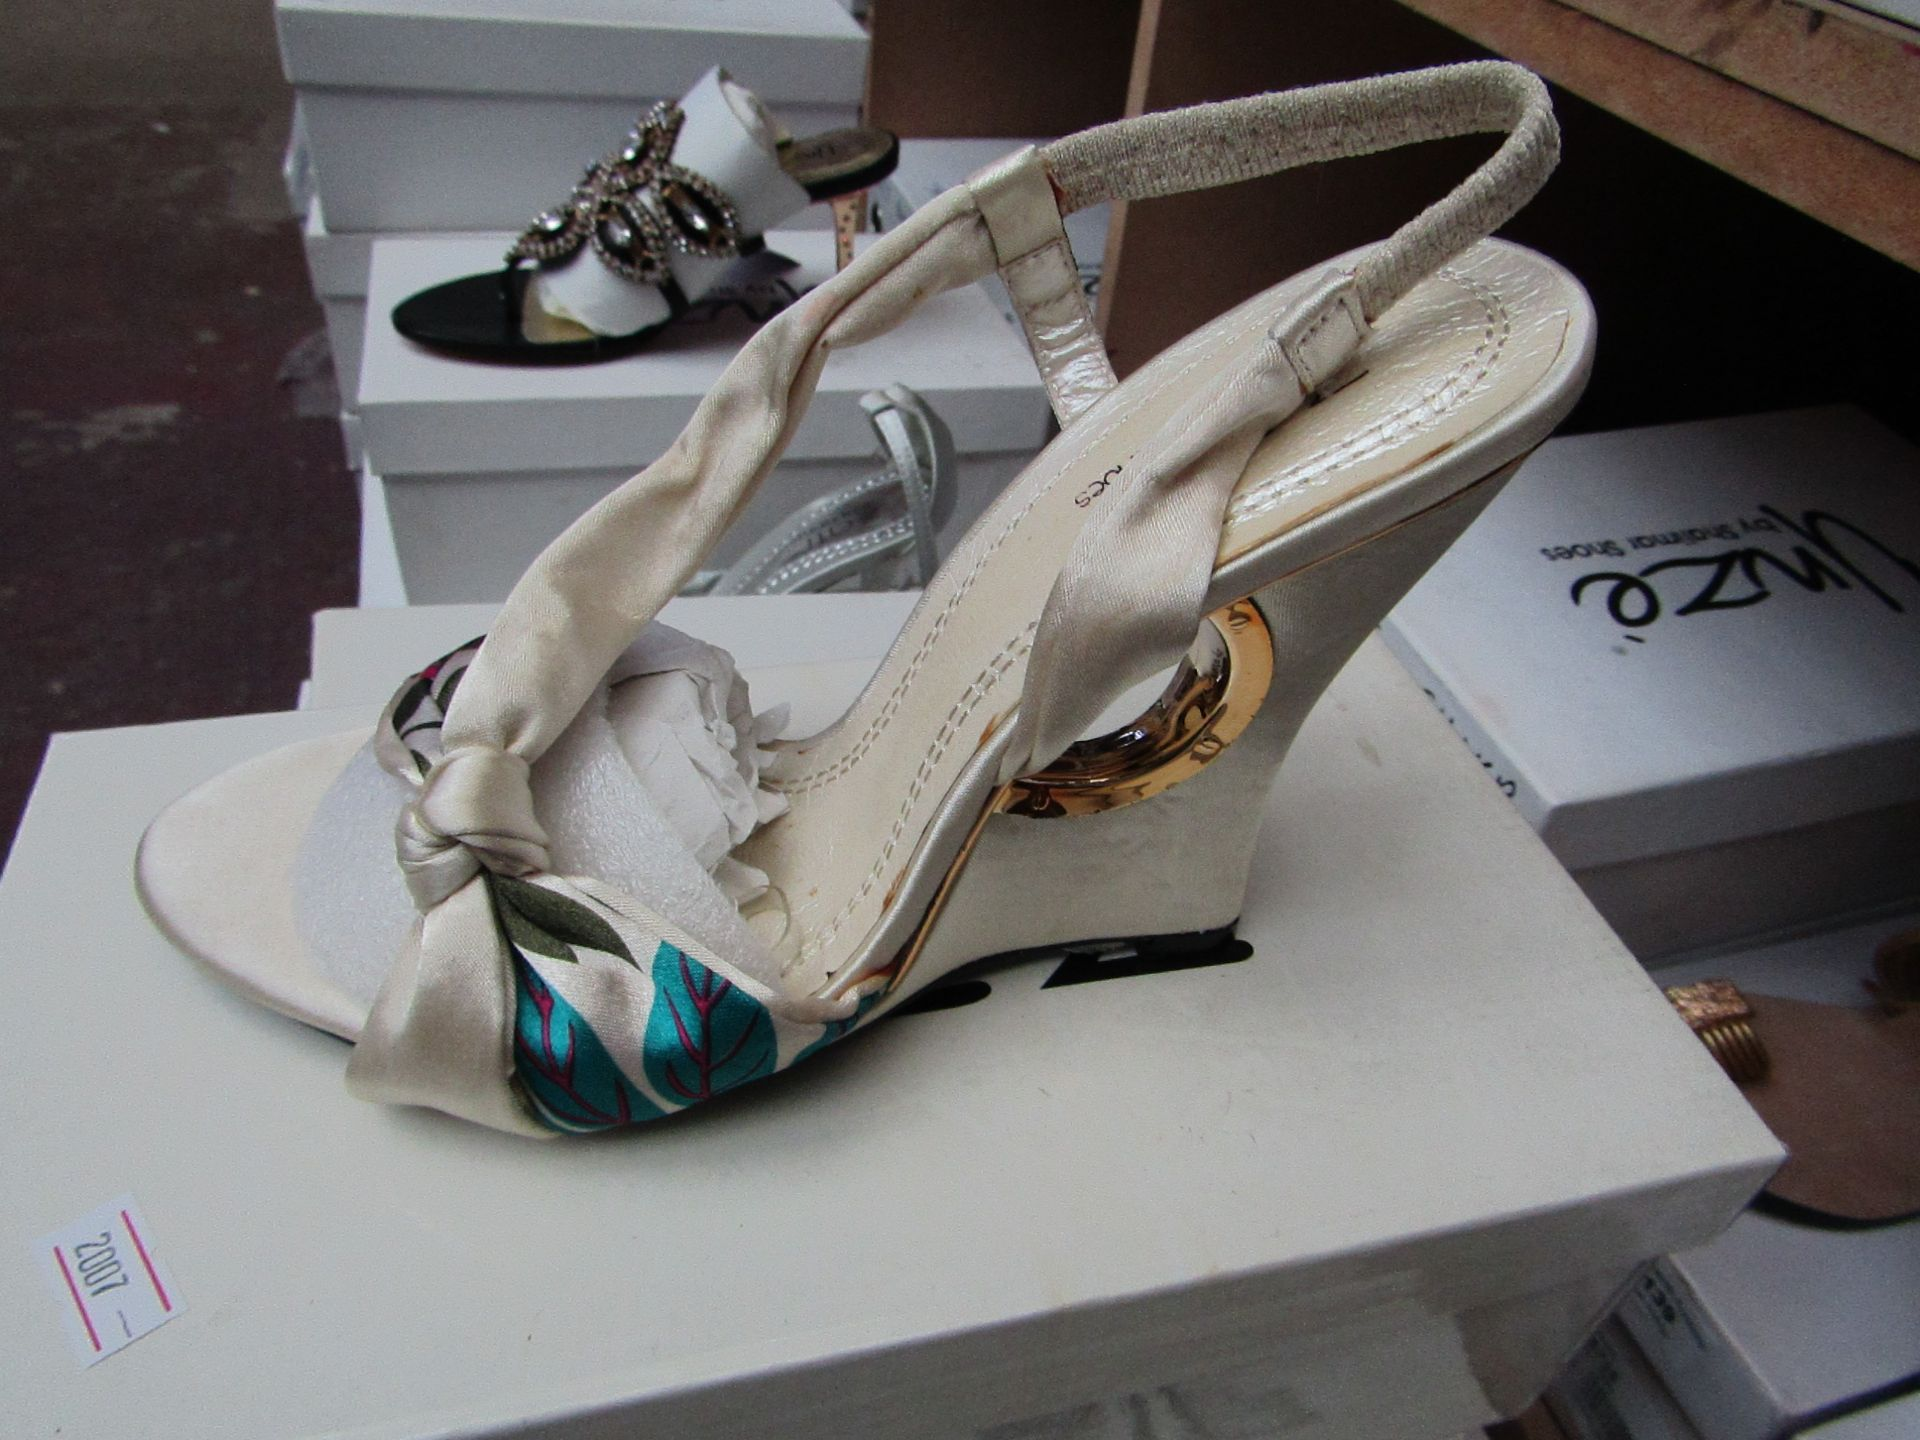 Zaif by Shalamar Shoes Ladies Ivory Shoes size 8 new & boxed see image for design